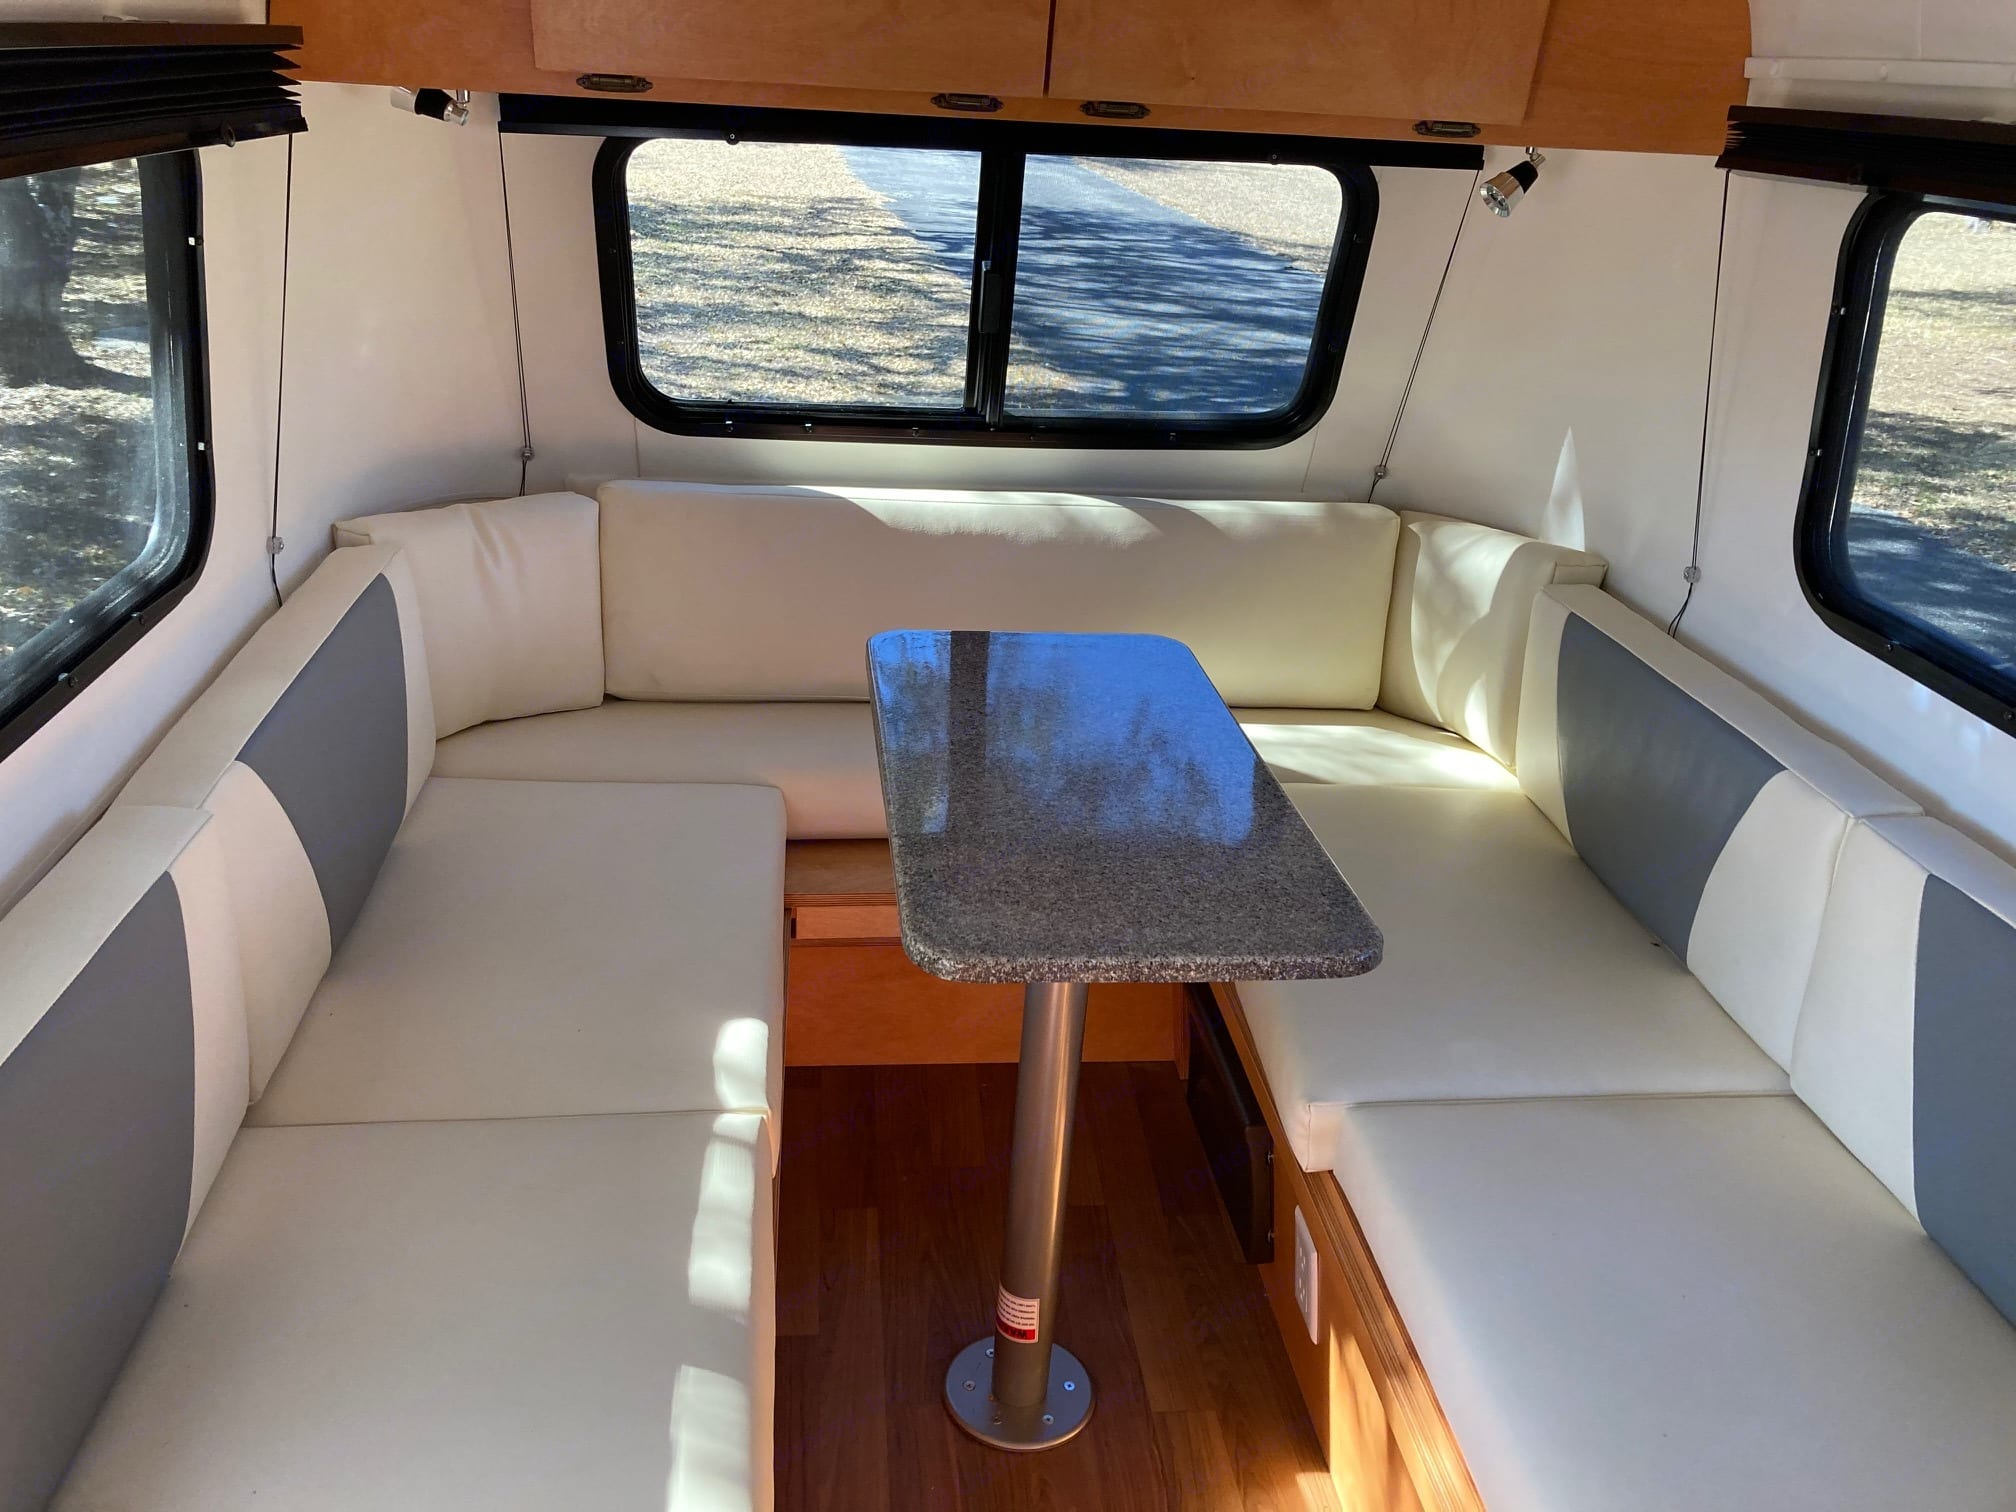 Extra storage under the benches and electric plugs at your feet. Windows open and close. . Meerkat Mini trailer 2020